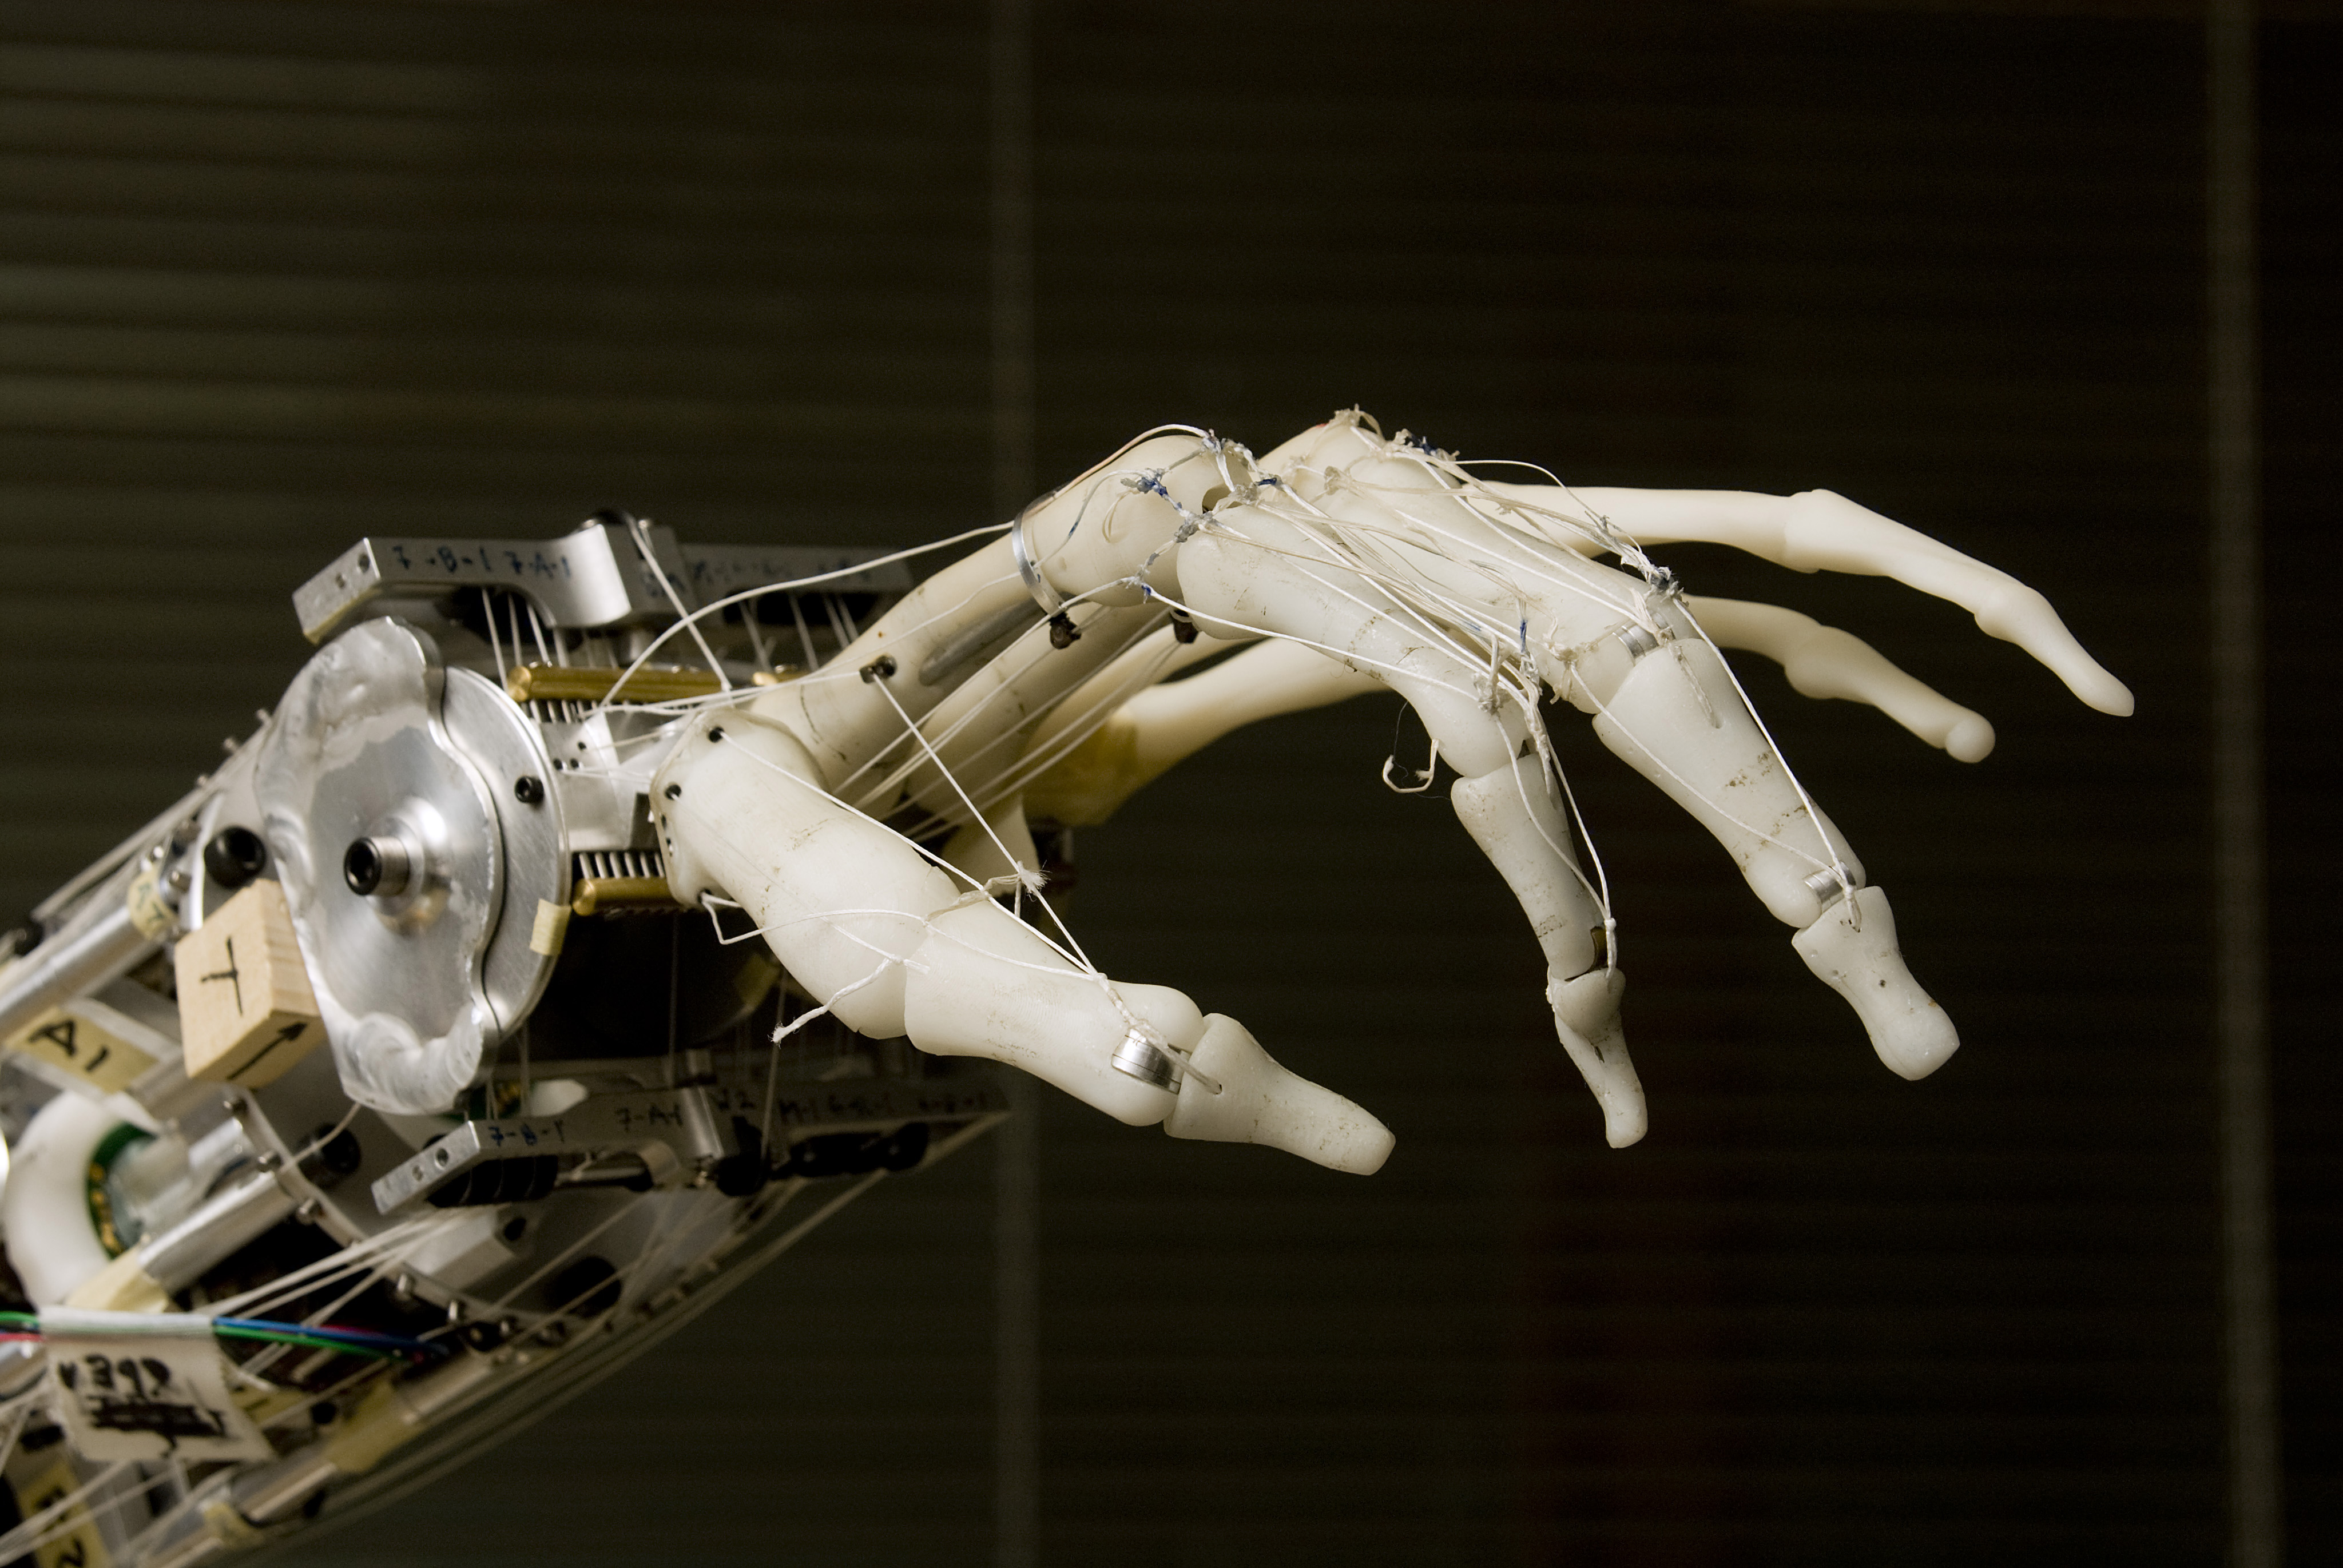 The Neurobotics Lab's prosthetic hand is a close replica of an actual human hand. Researchers are working to integrate it with the human nervous system.